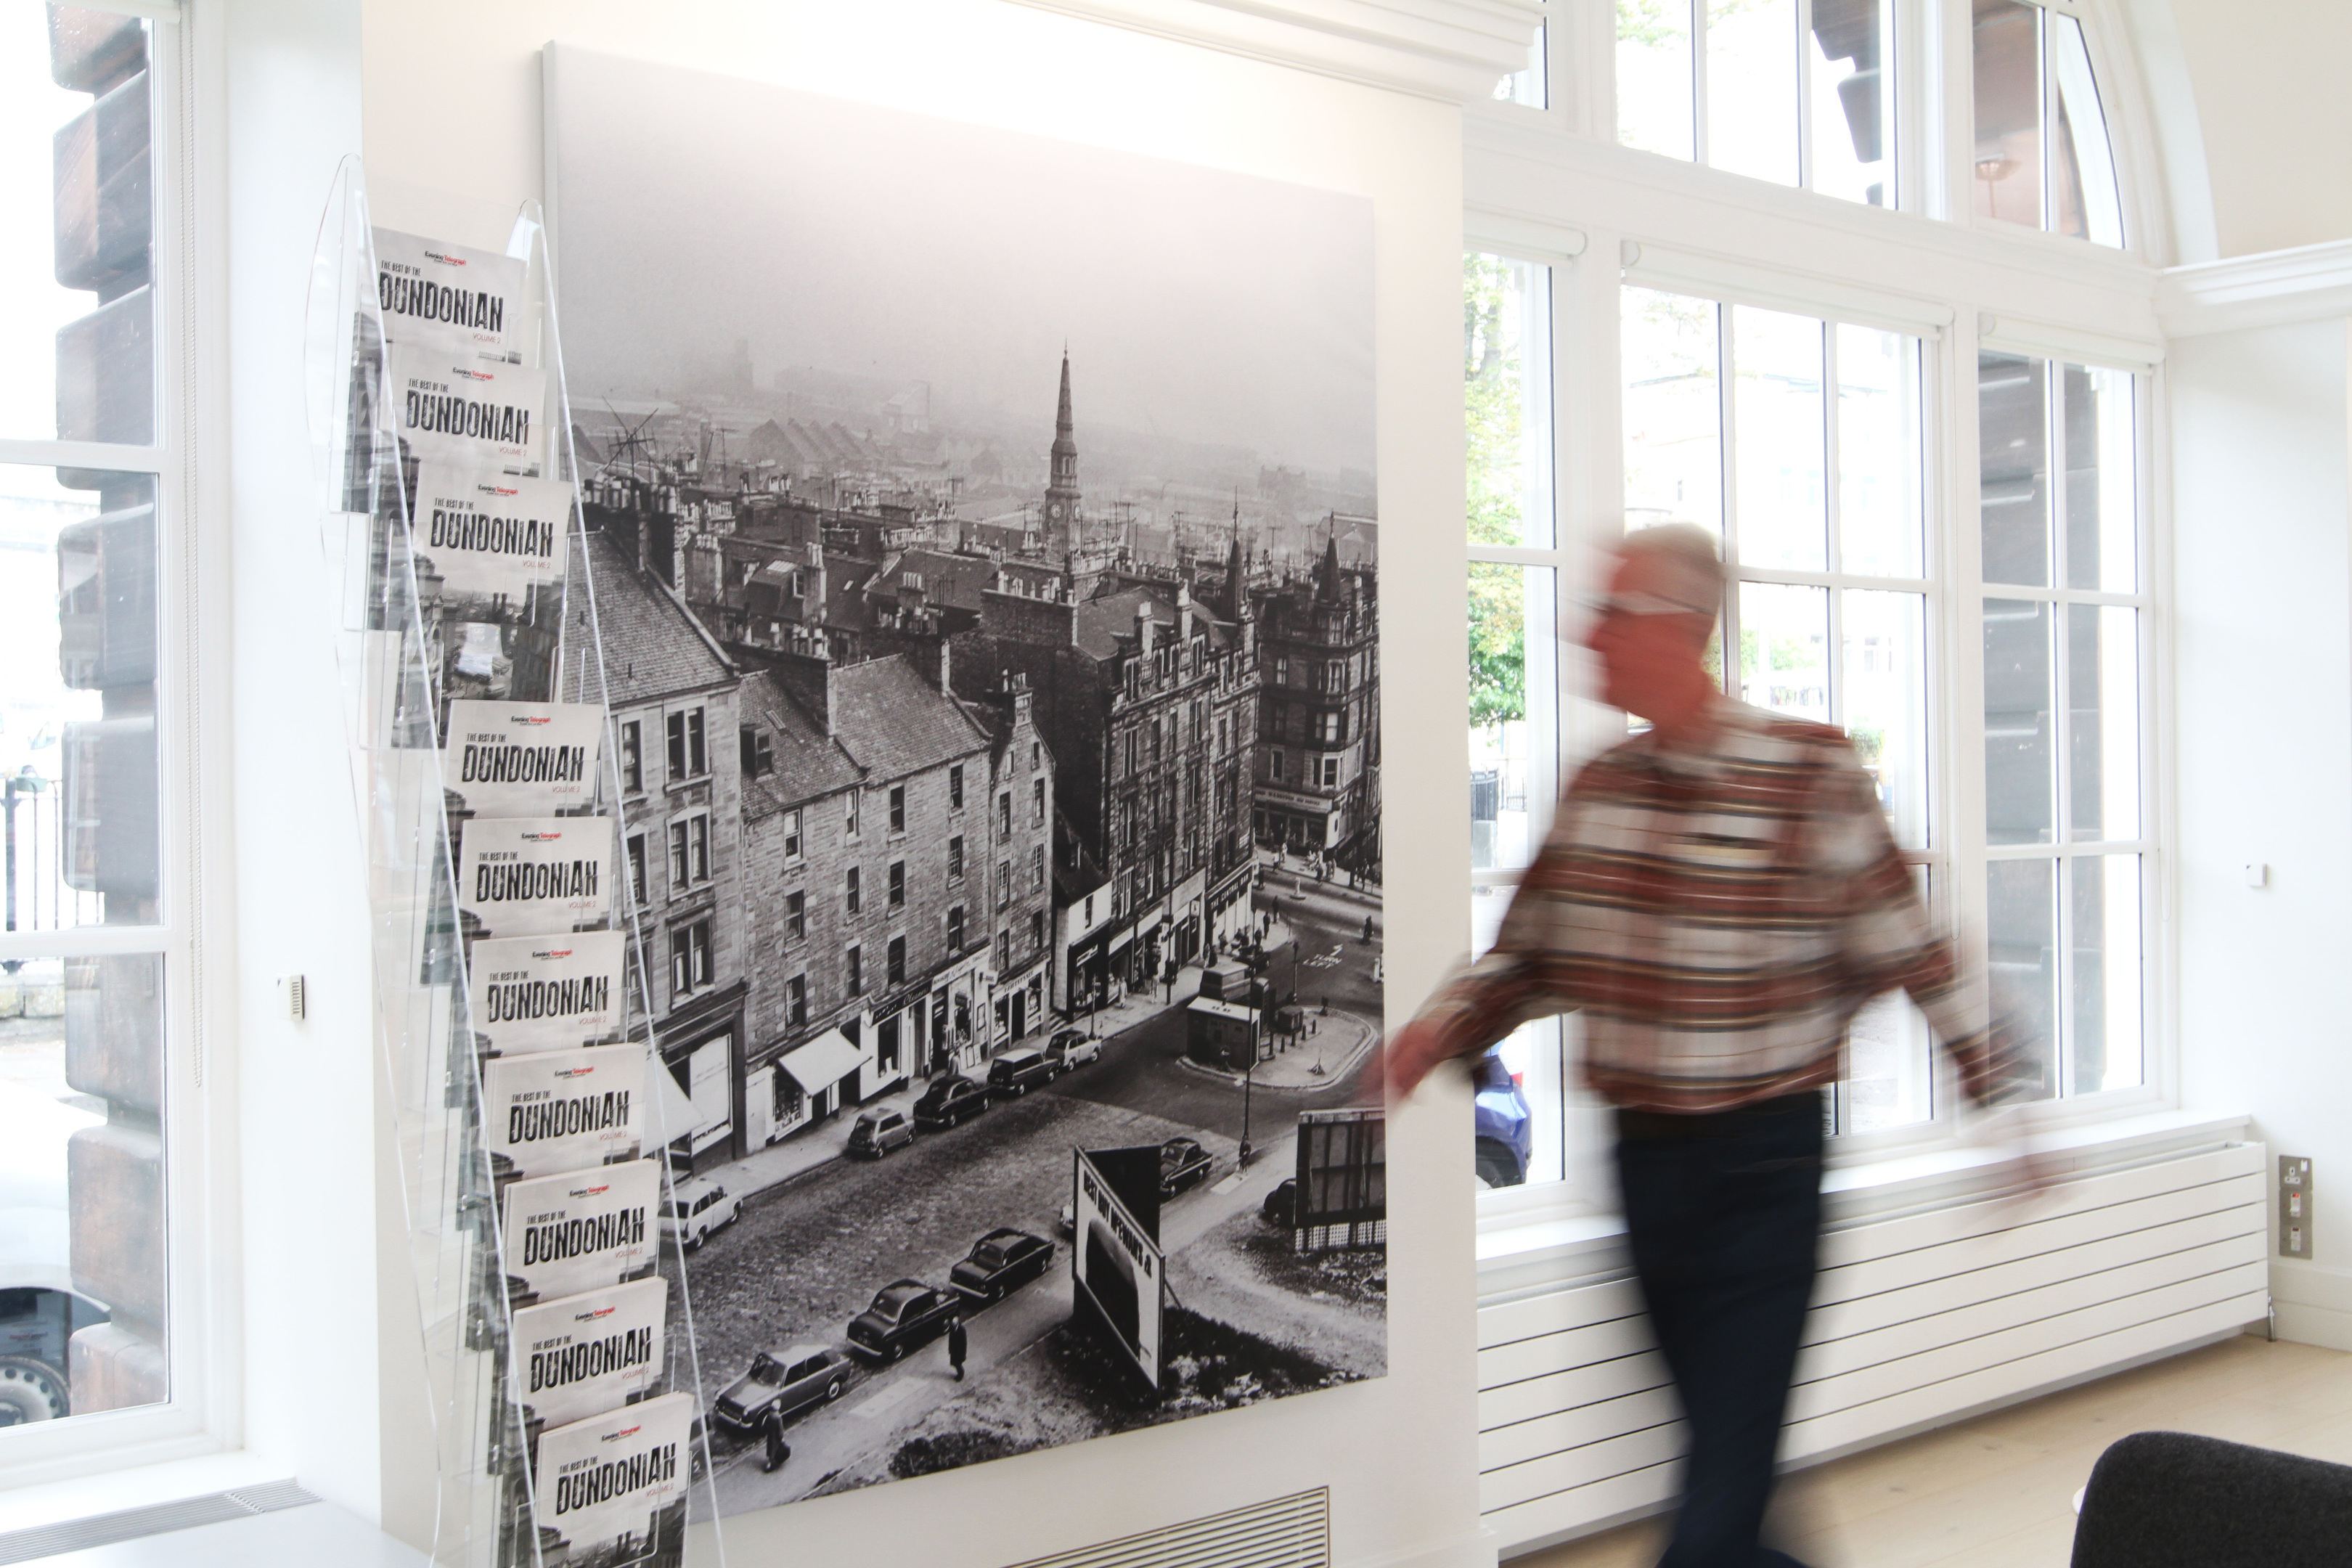 The exhibition on display at Meadowside